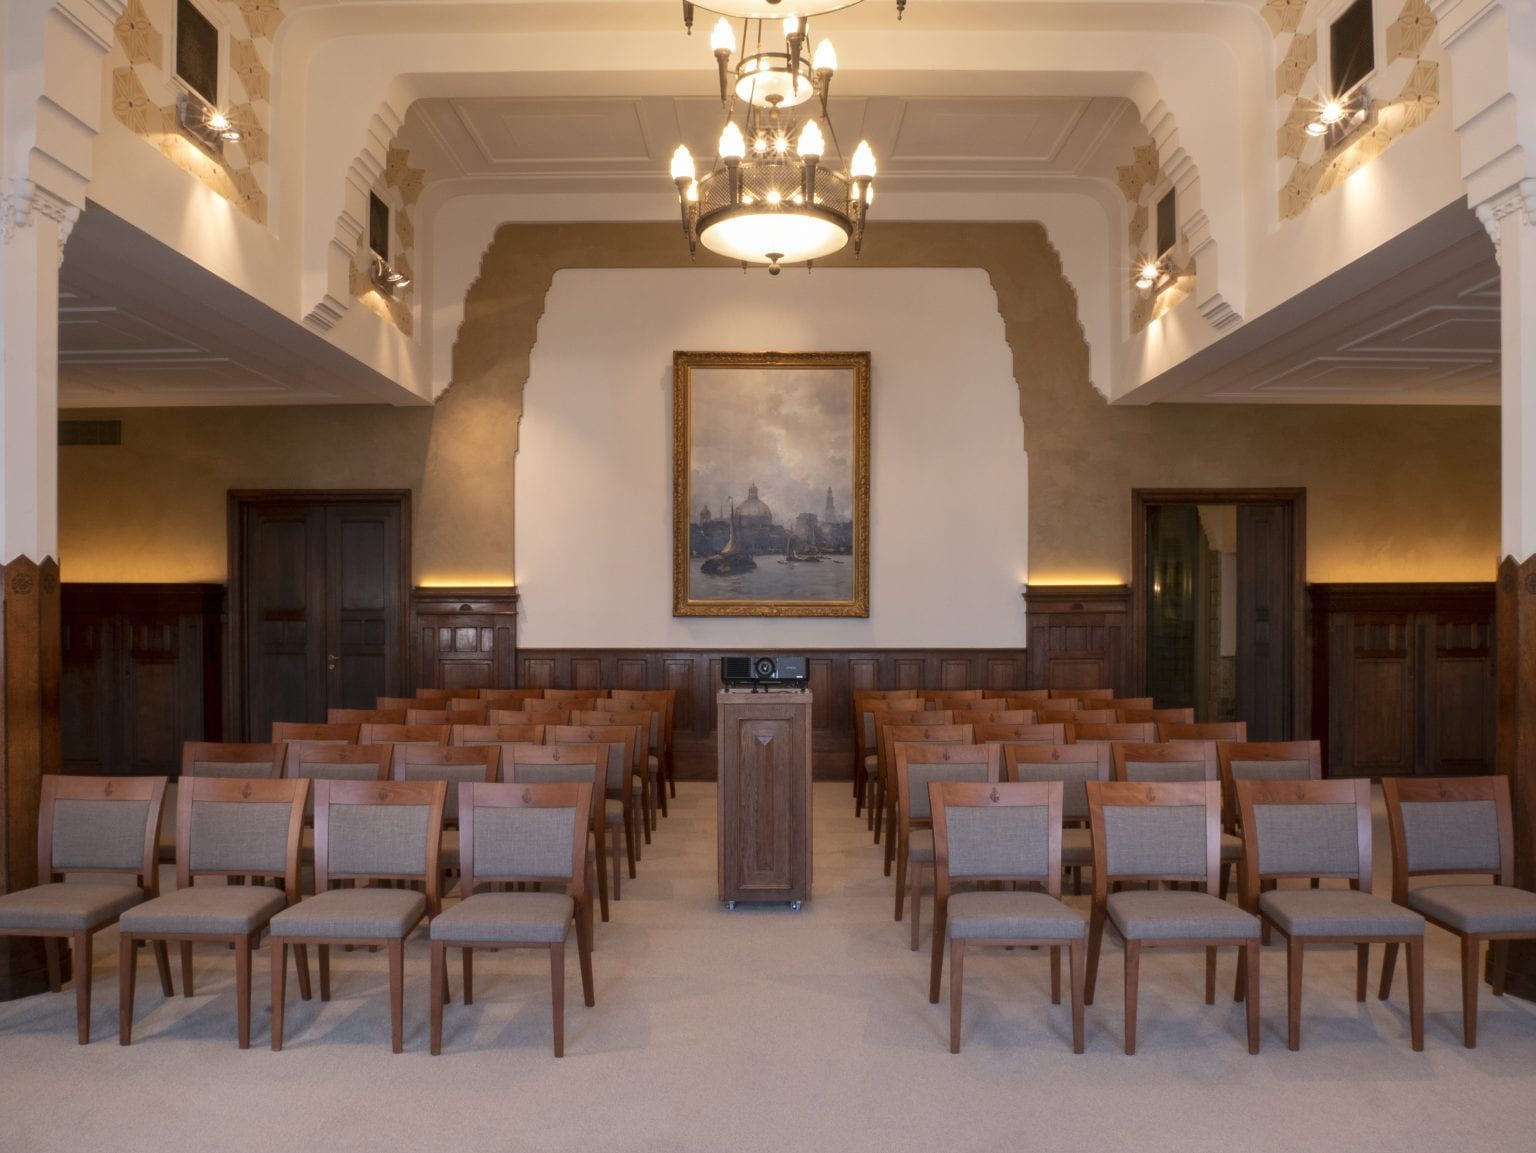 Groote-Zaal-theater-1